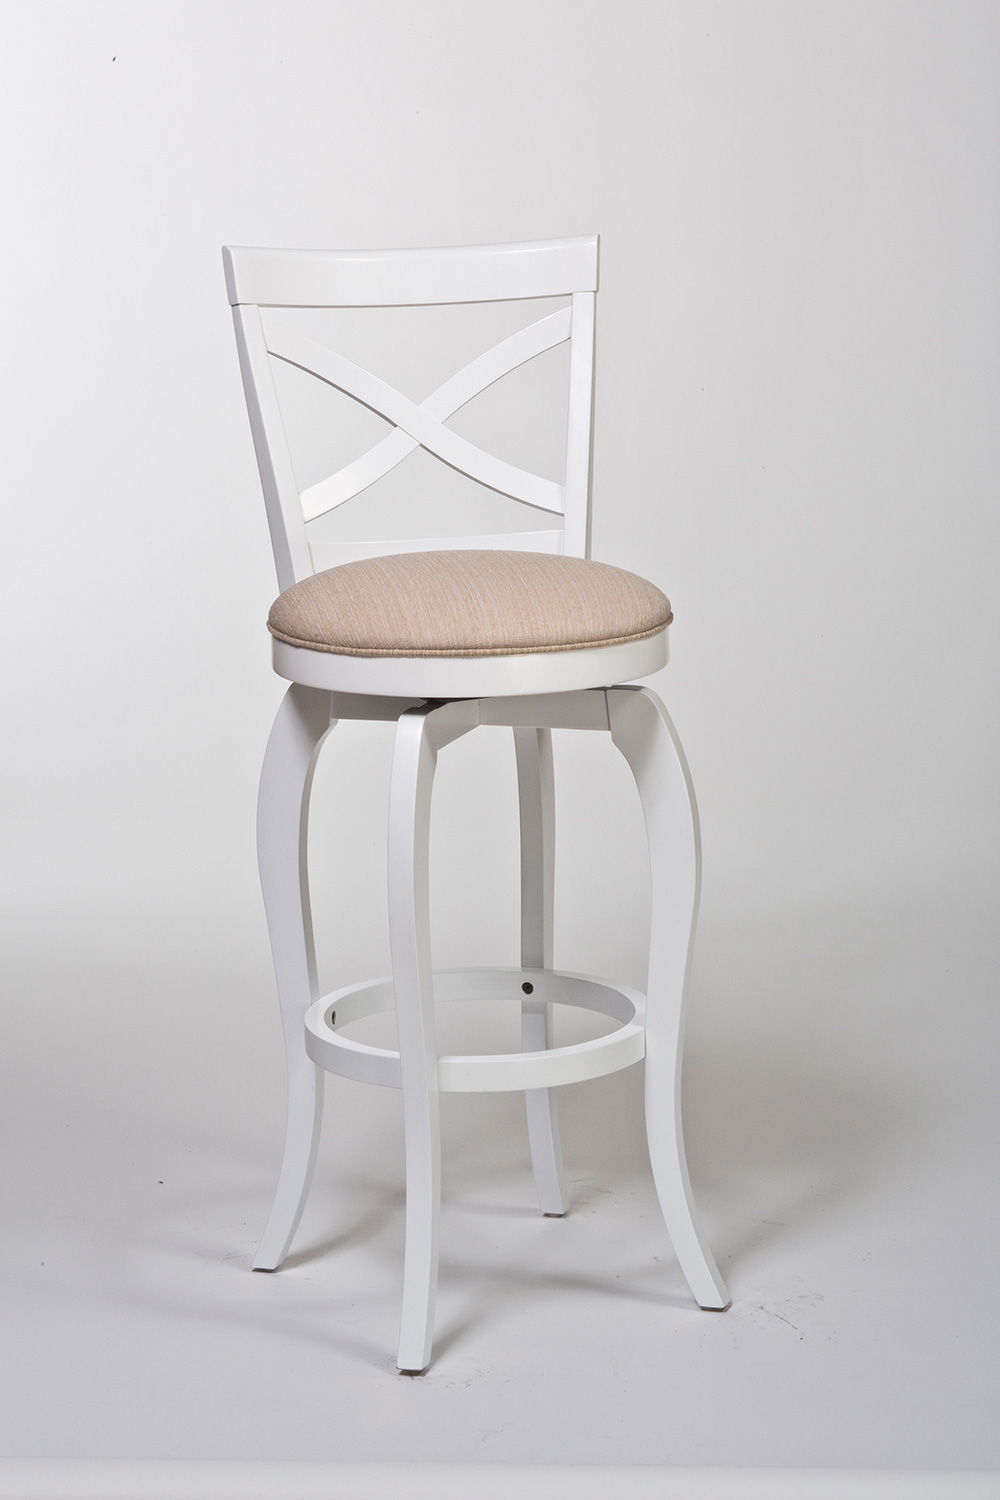 Hillsdale ellendale swivel bar stool white beige